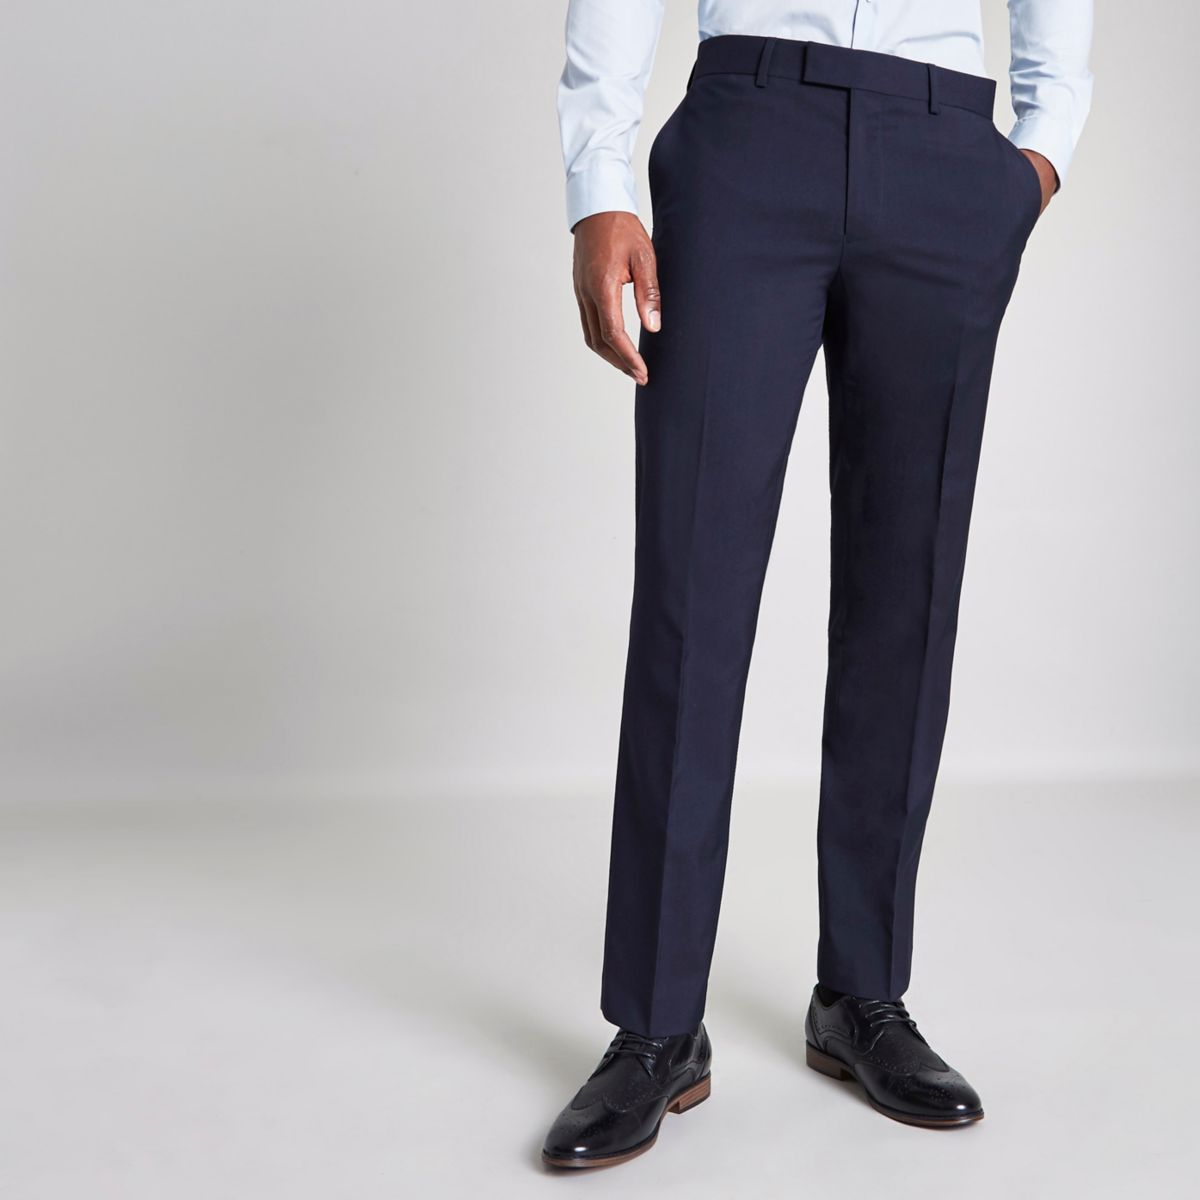 Navy tailored skinny fit trousers